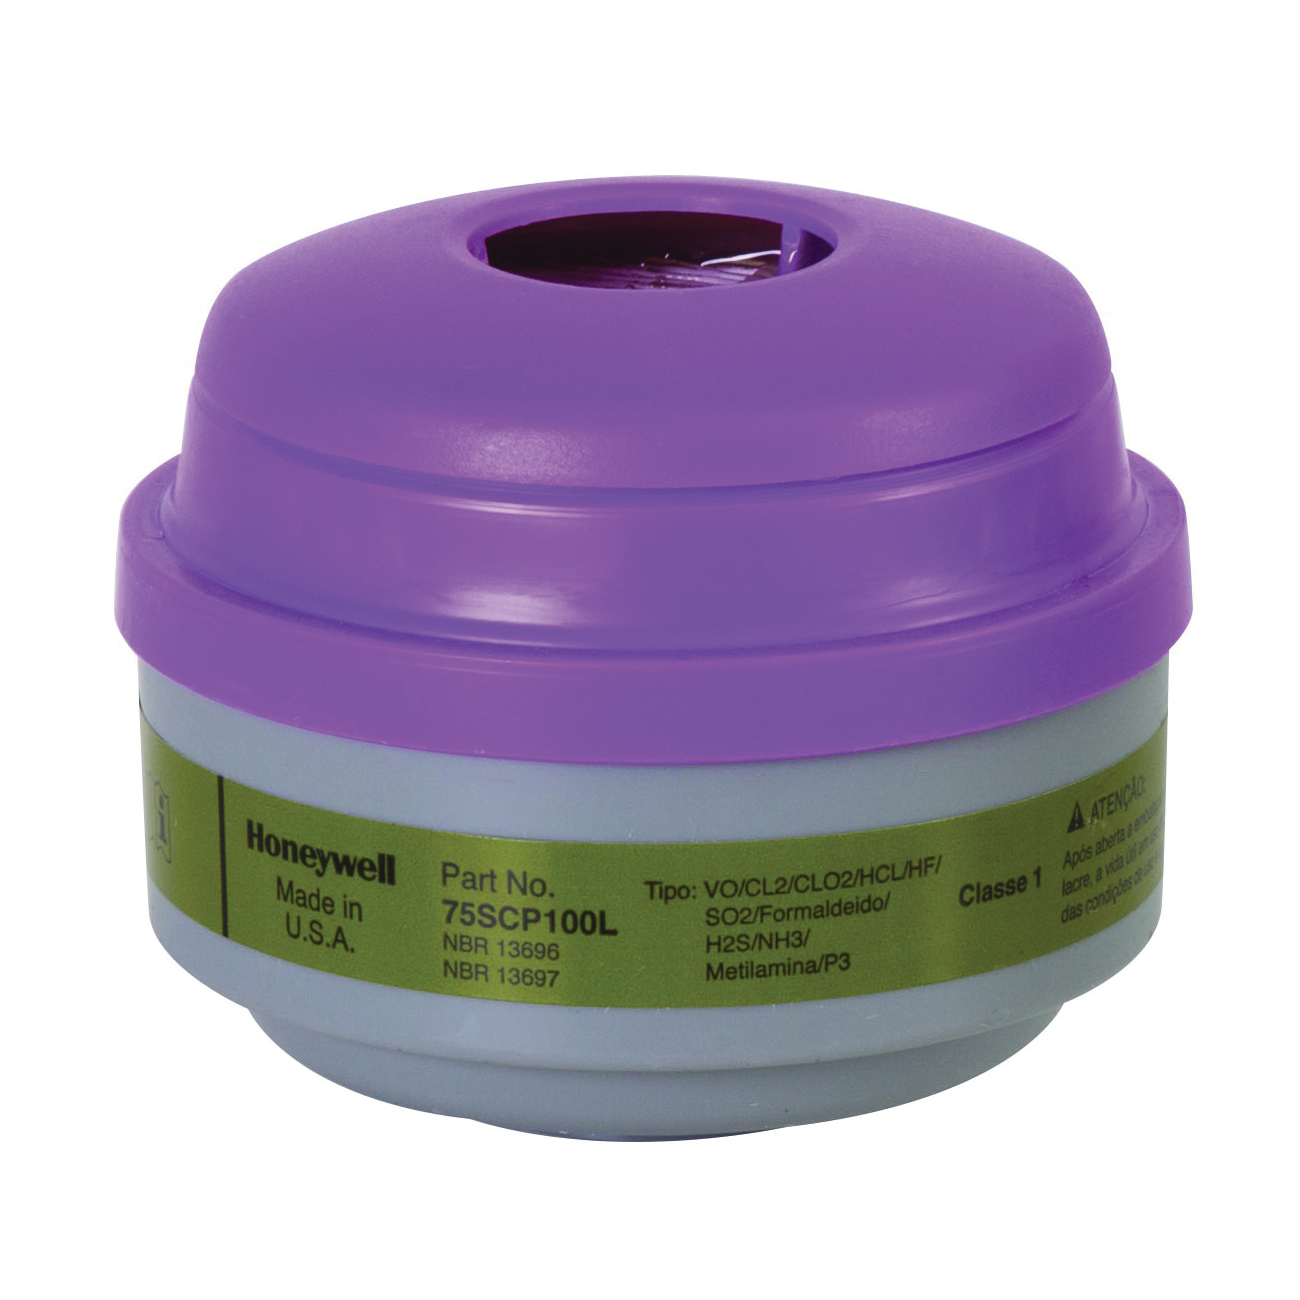 North® by Honeywell 75SCP100L N Series Low Profile Combination Cartridge, For Use With 5400, 5500, 7600 and 7700 Series Respirators, P100 Filter Class, 0.999 Filter Efficiency